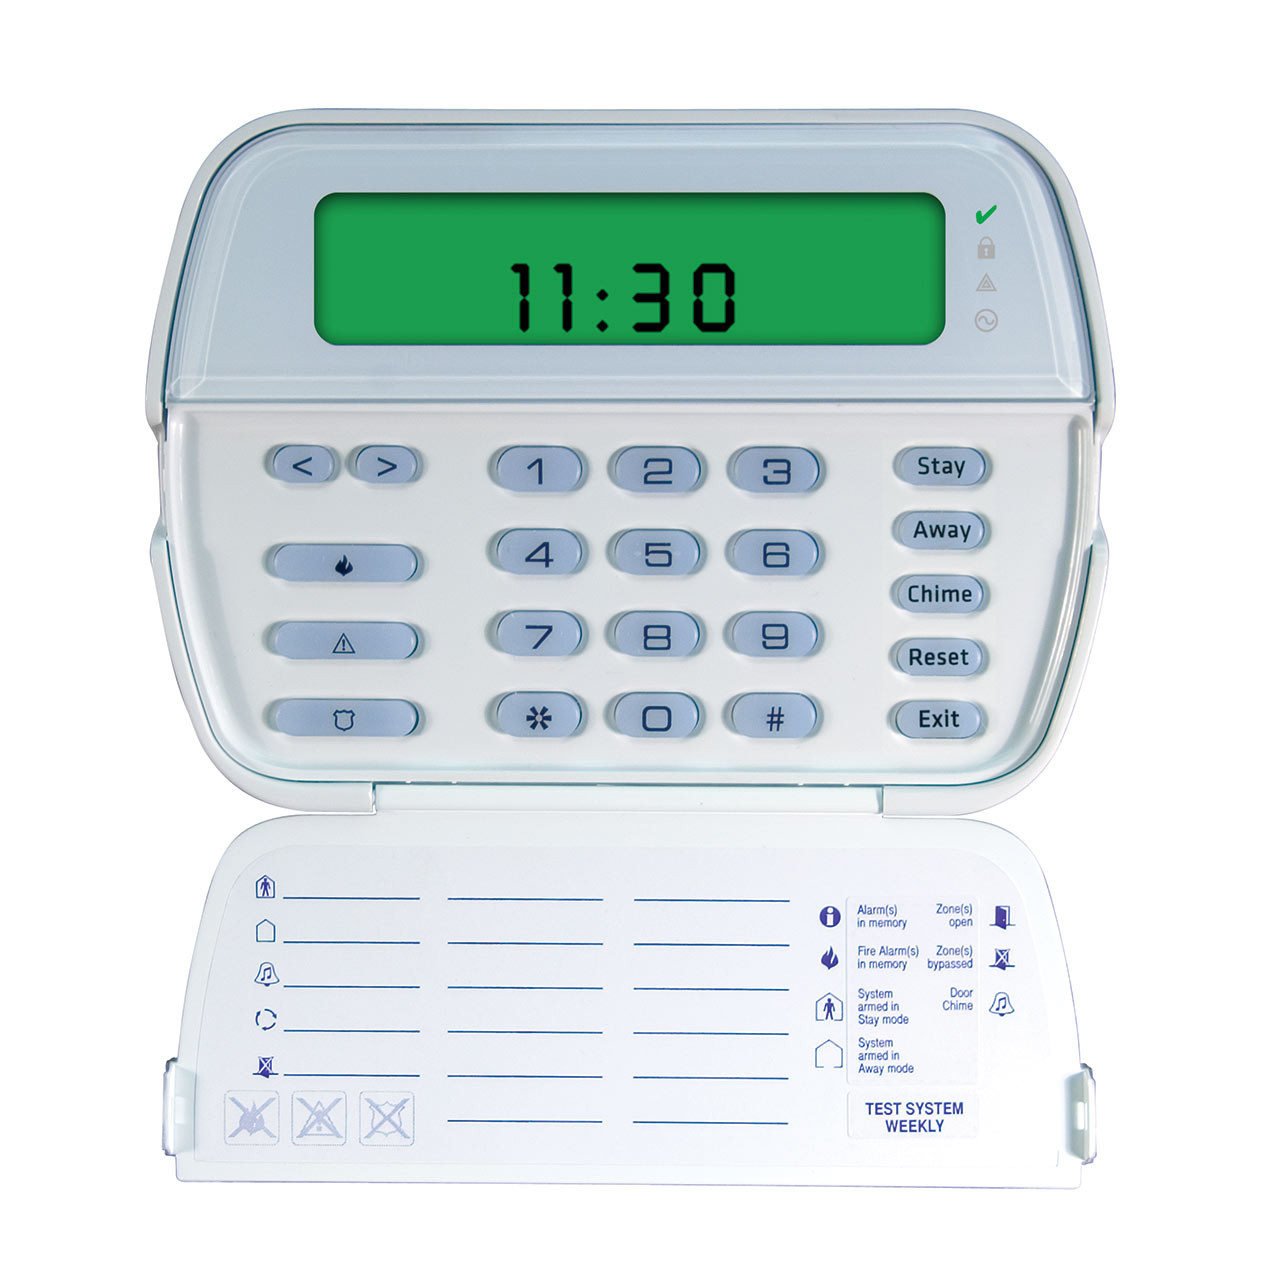 DSC PK5501 LCD Picture Icon Keypad - 64 Zone English